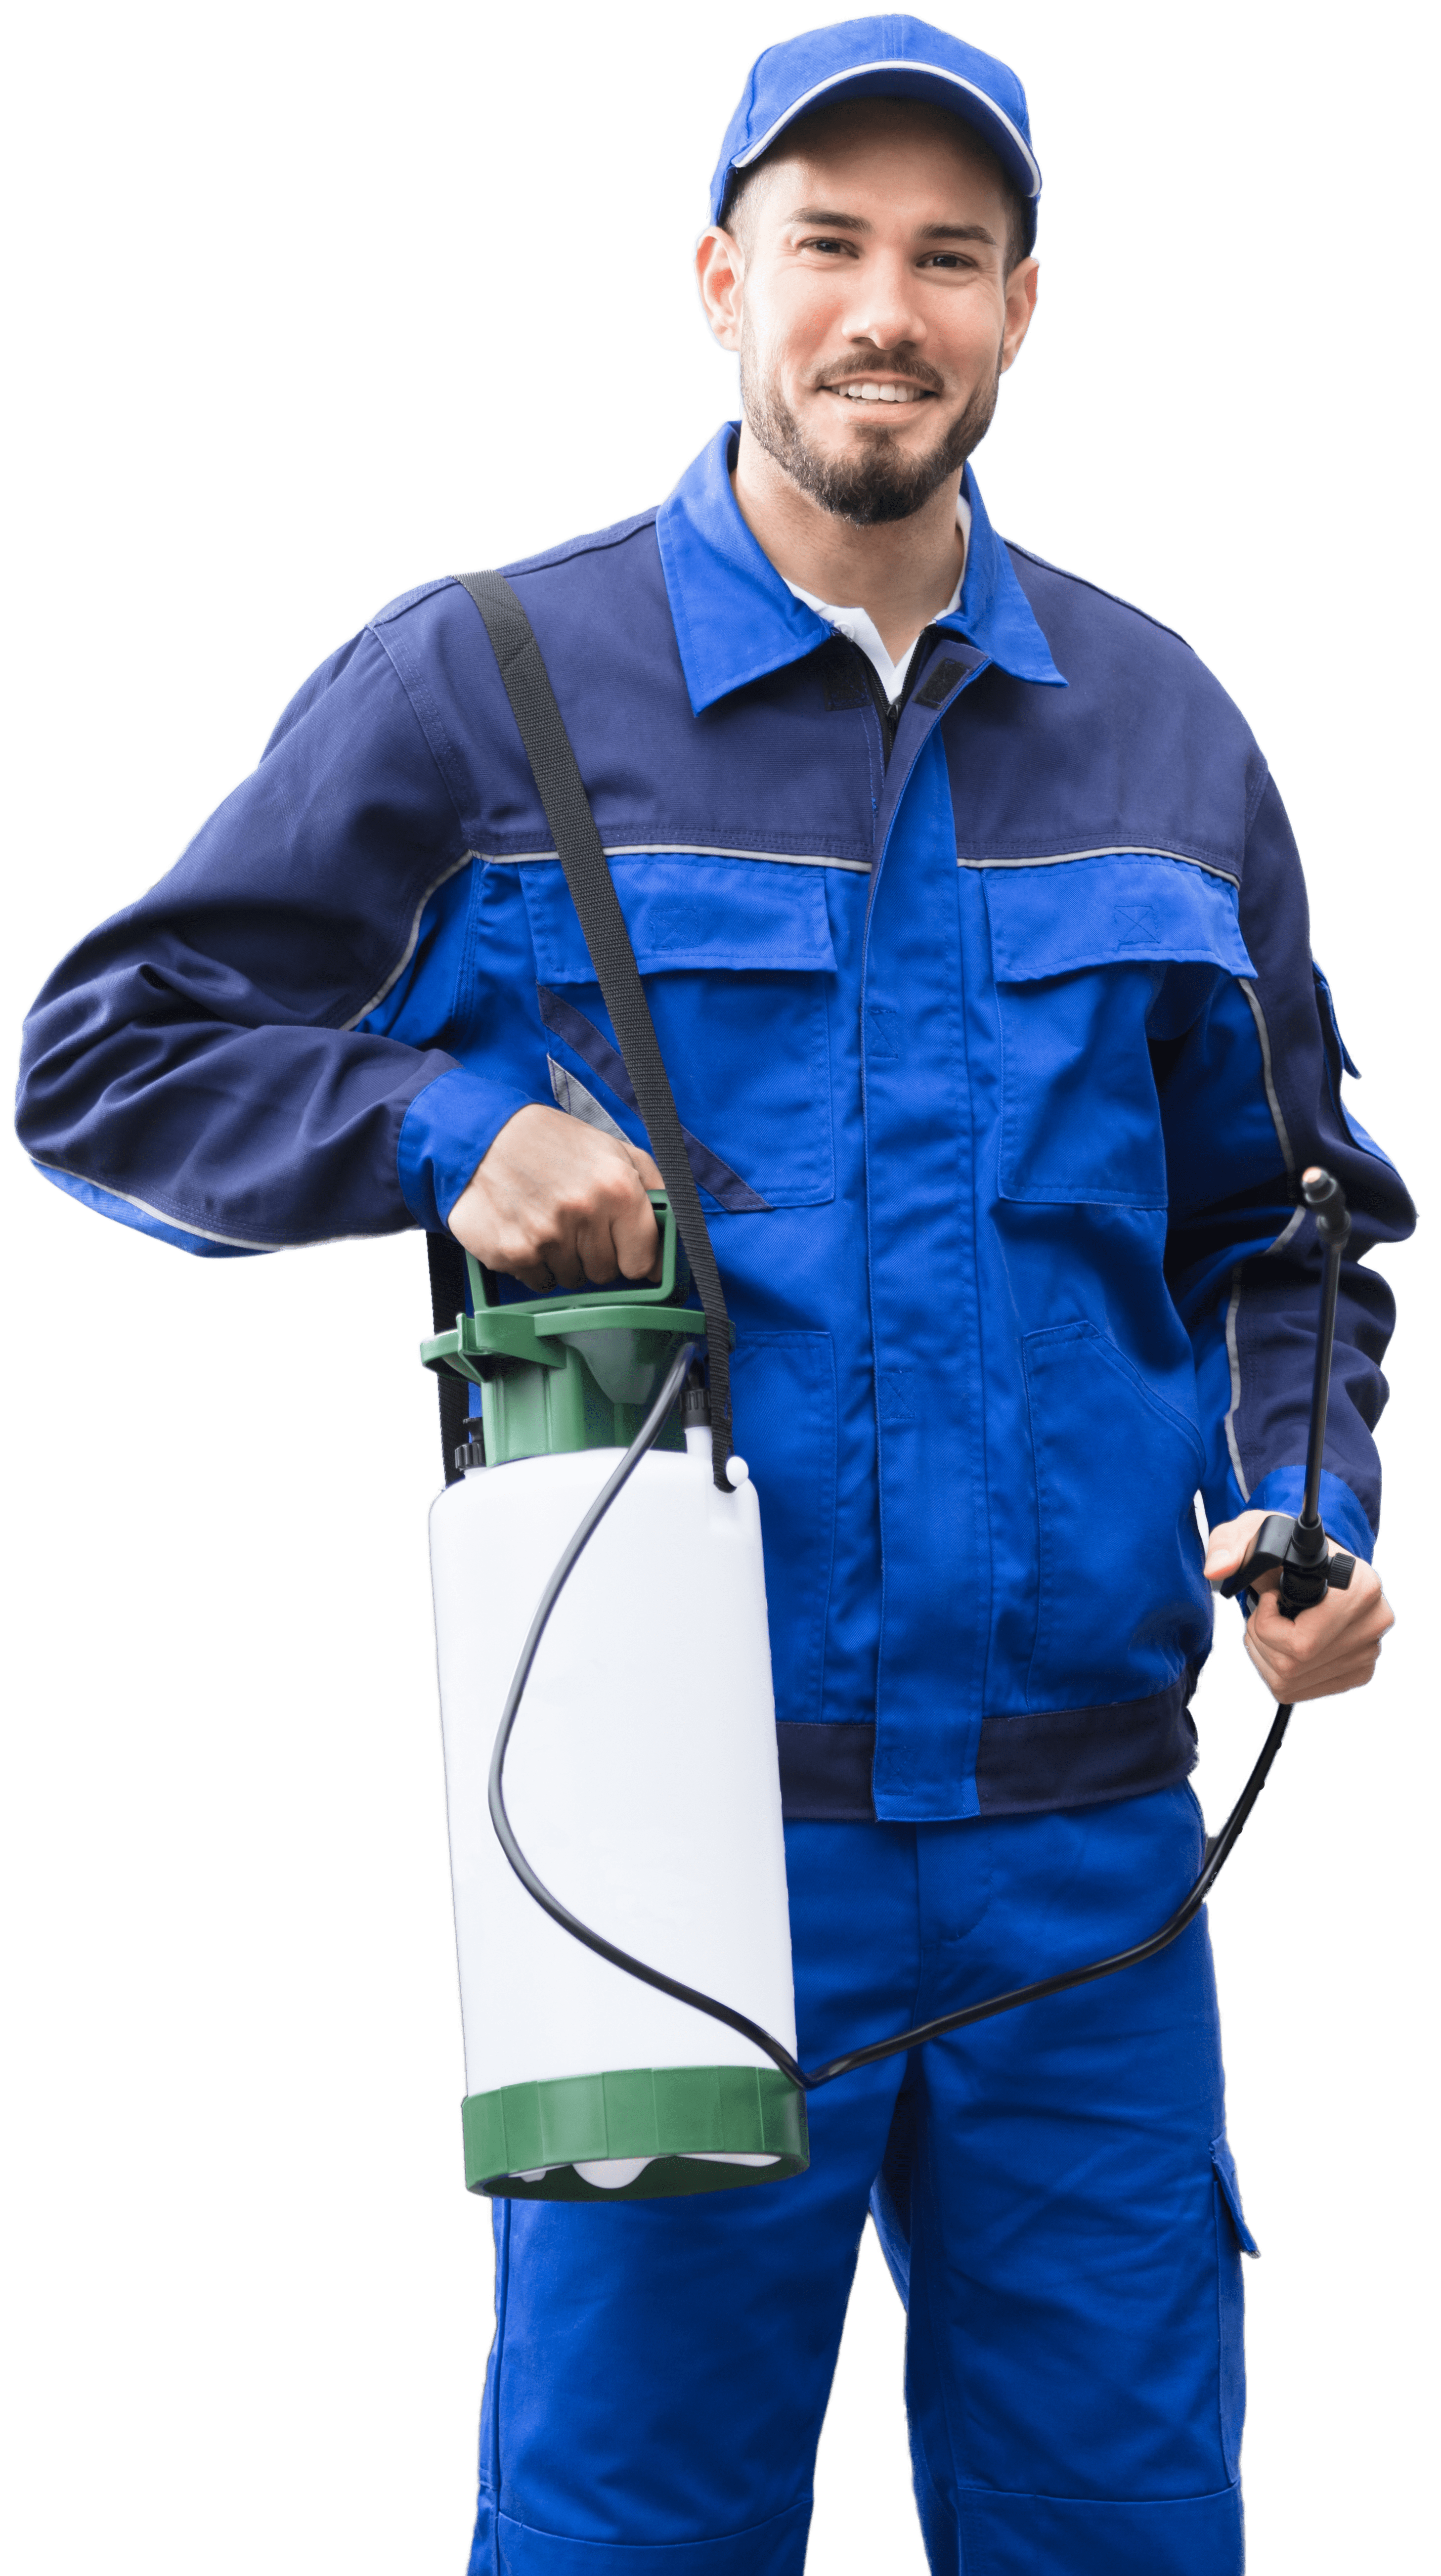 expert extermination services by aaa exterminating indianapolis indiana